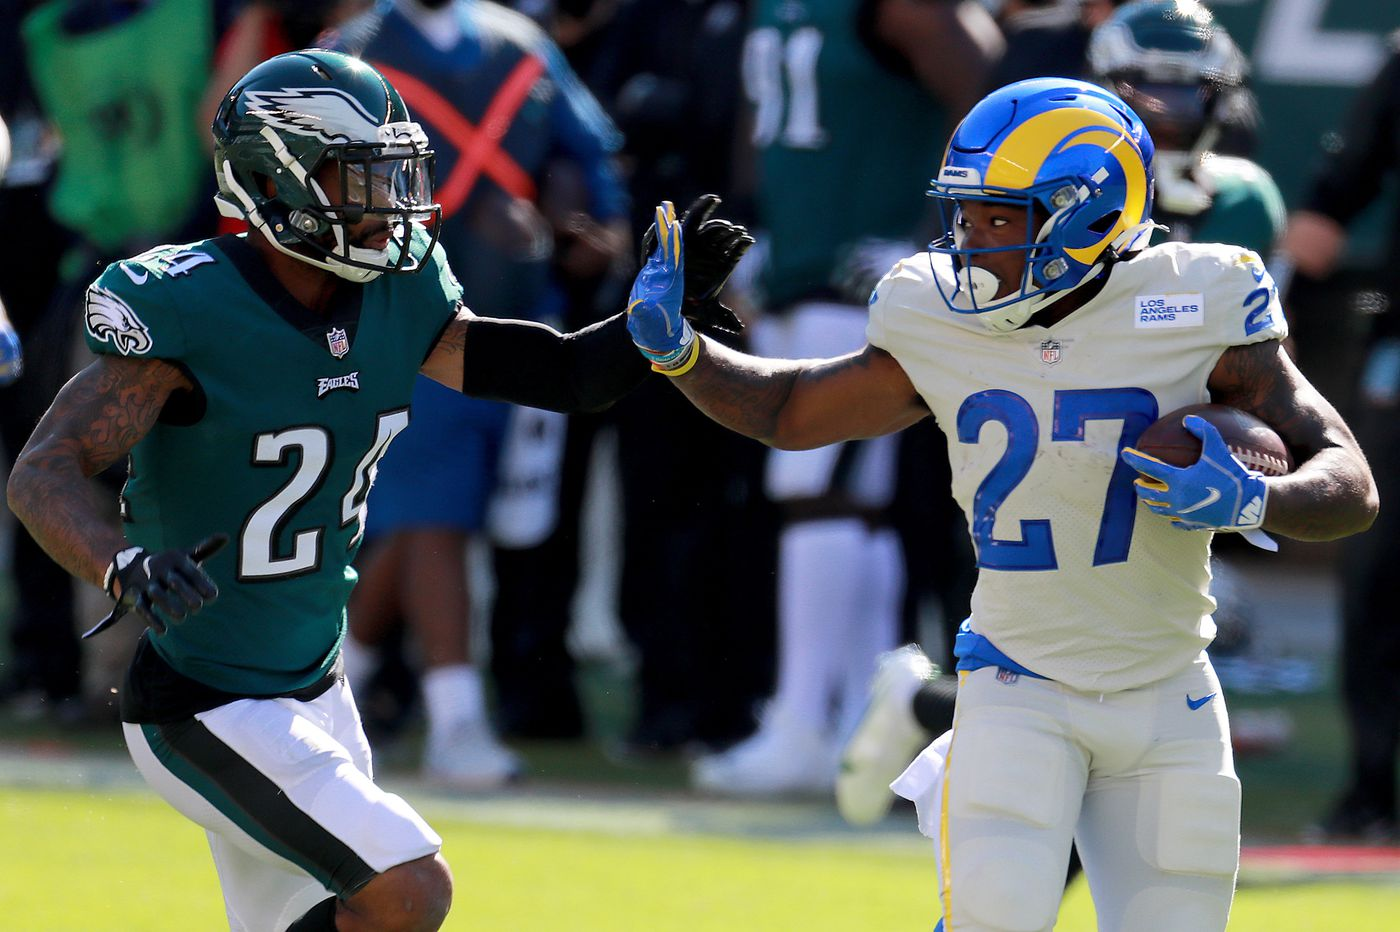 Eagles lose to Rams